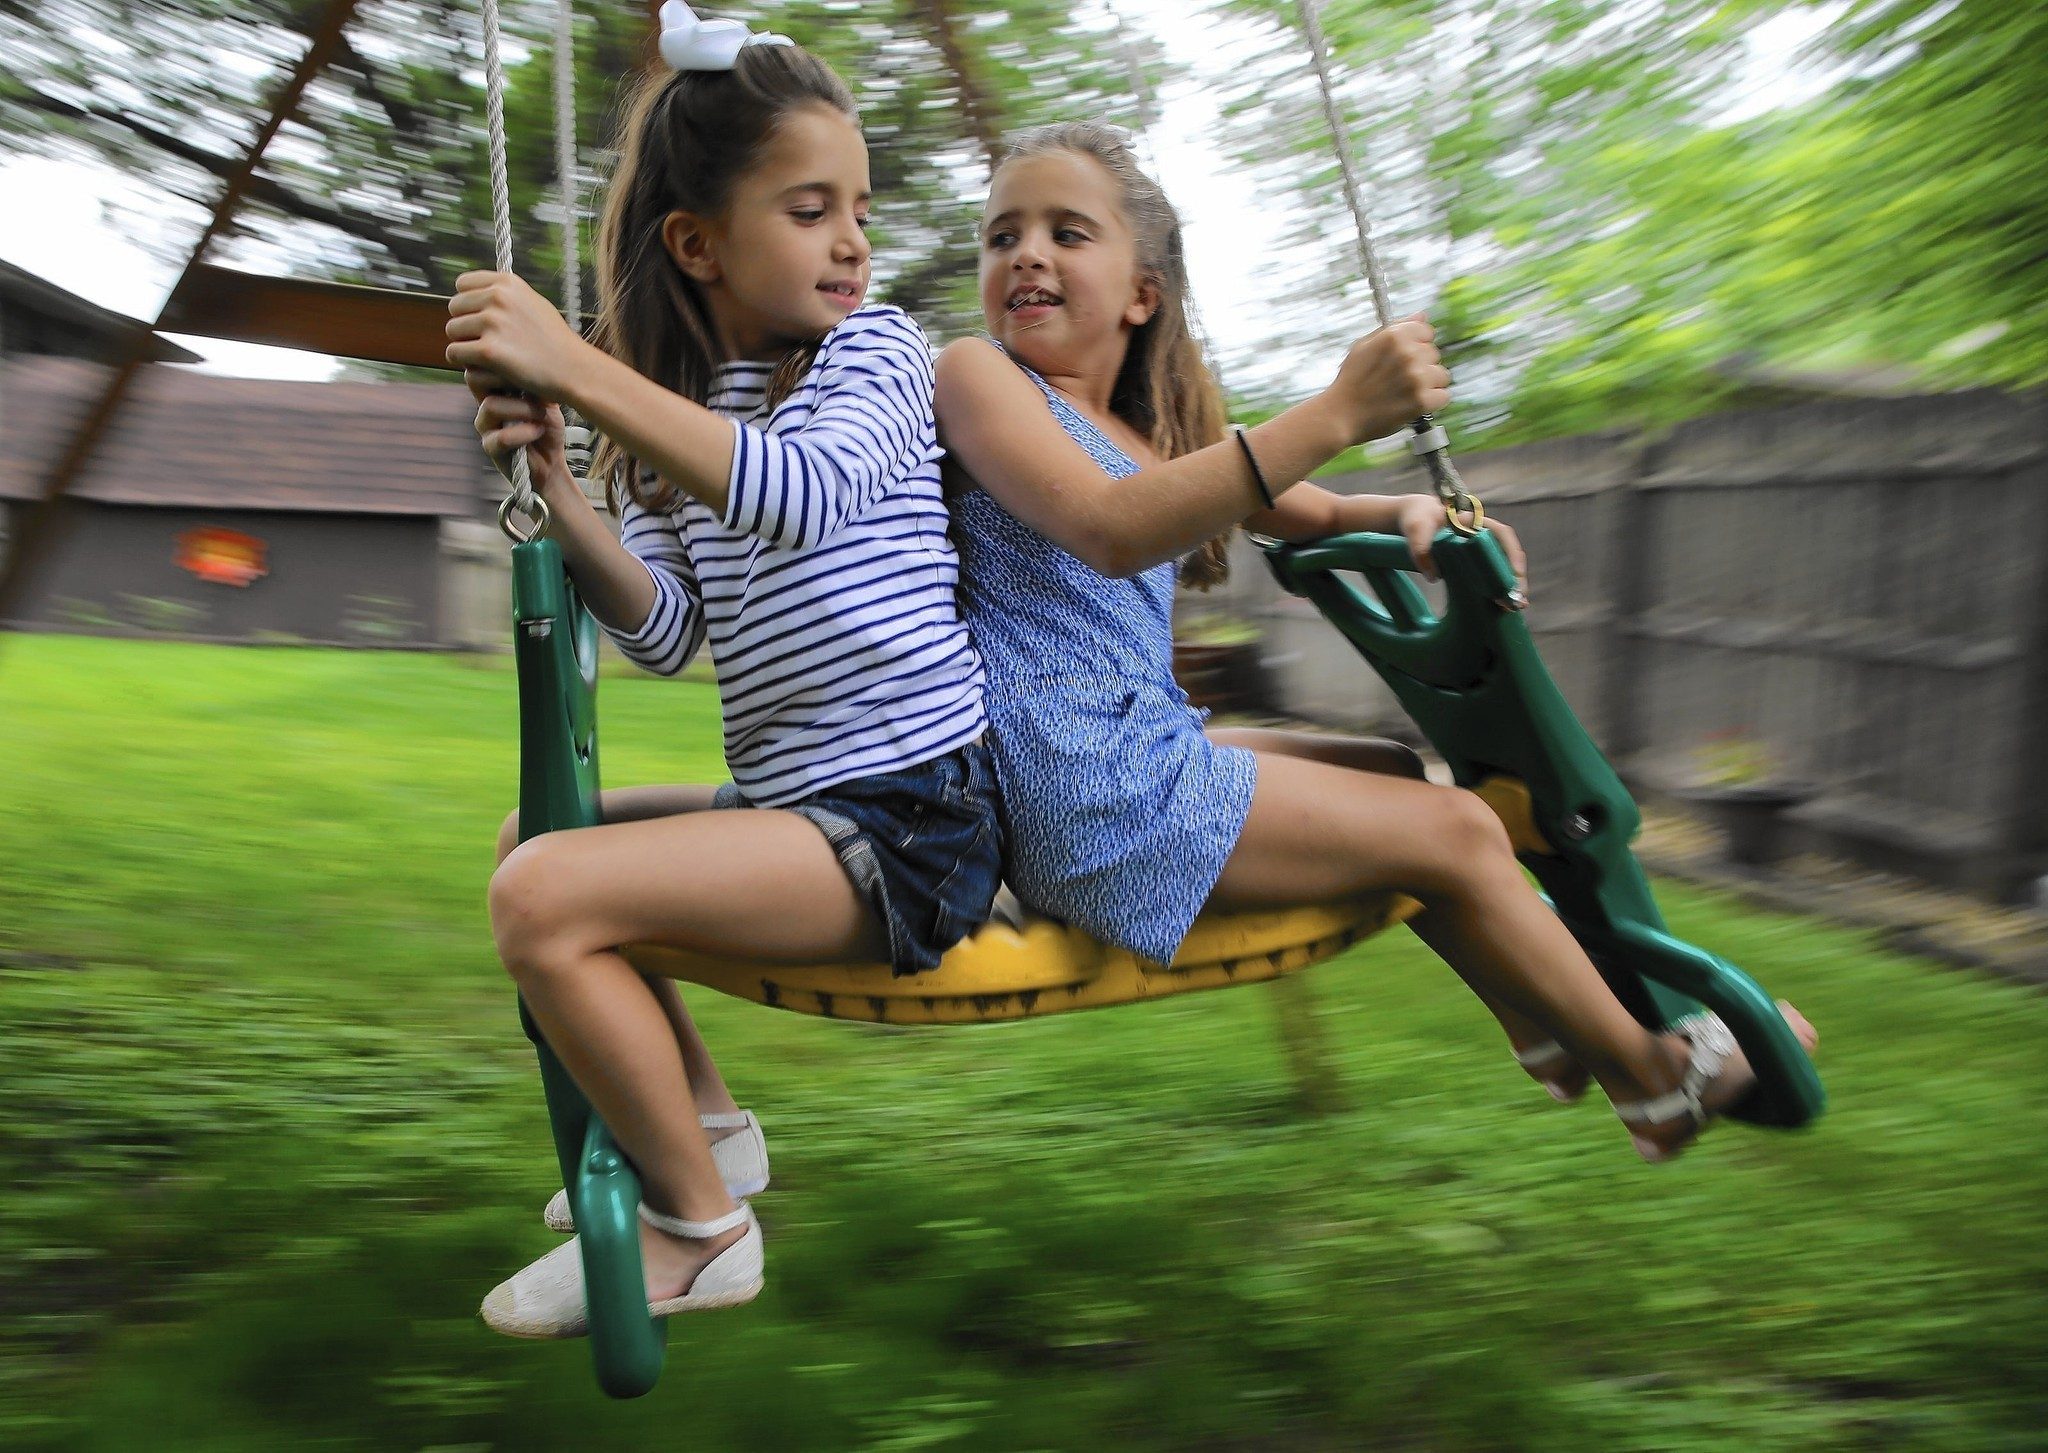 Er Trips For Kids With Food Allergies On Rise In Illinois